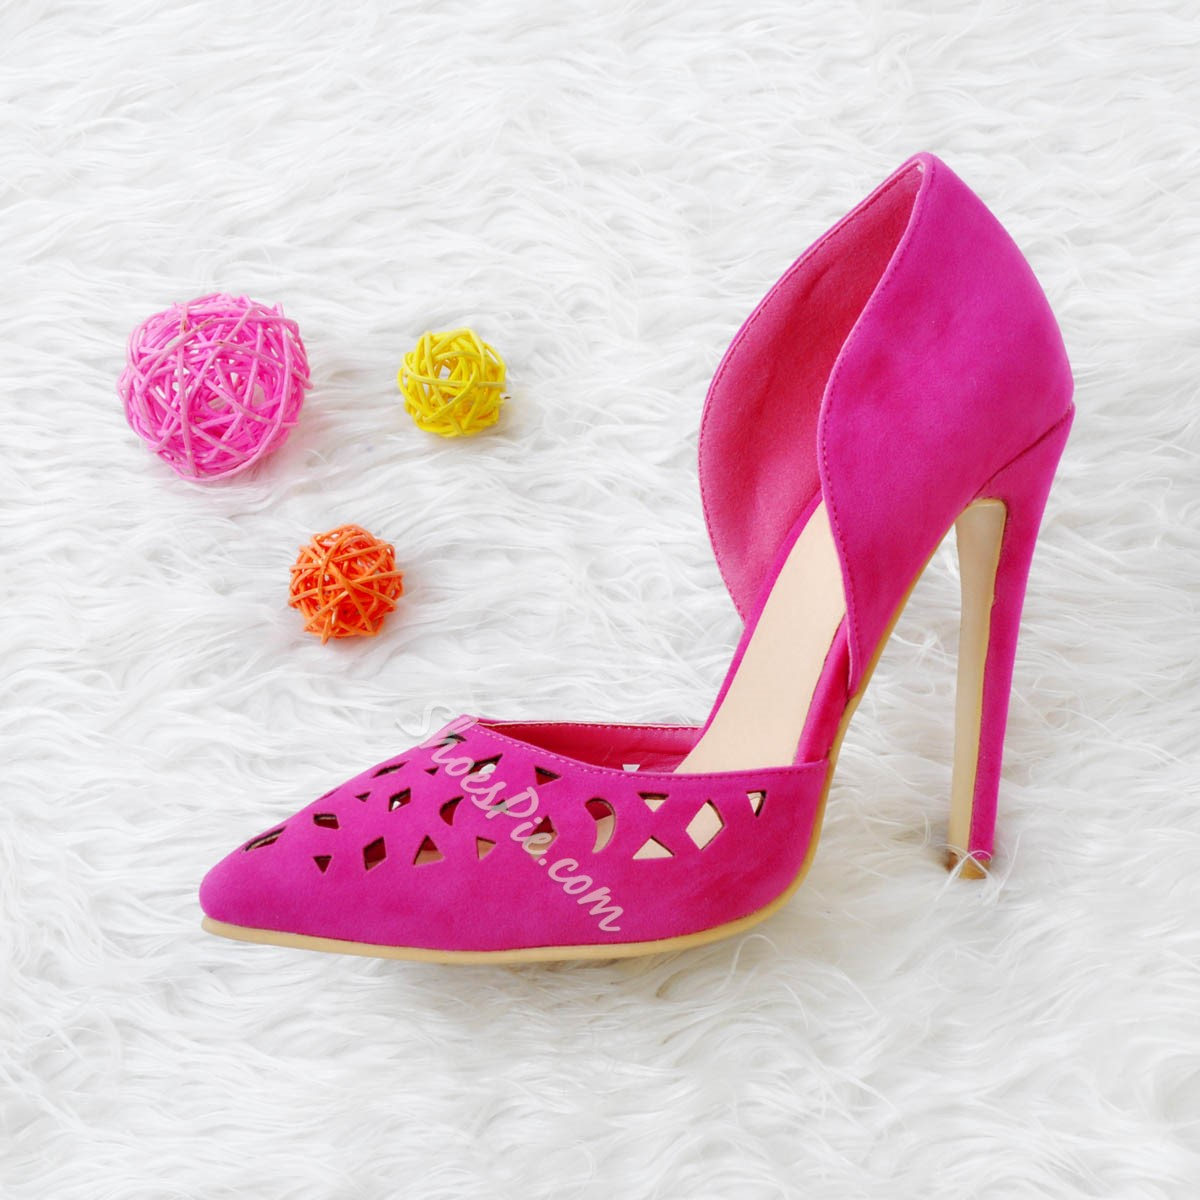 Shoespie Rose Pointed-toe Cutout Stiletto Heels